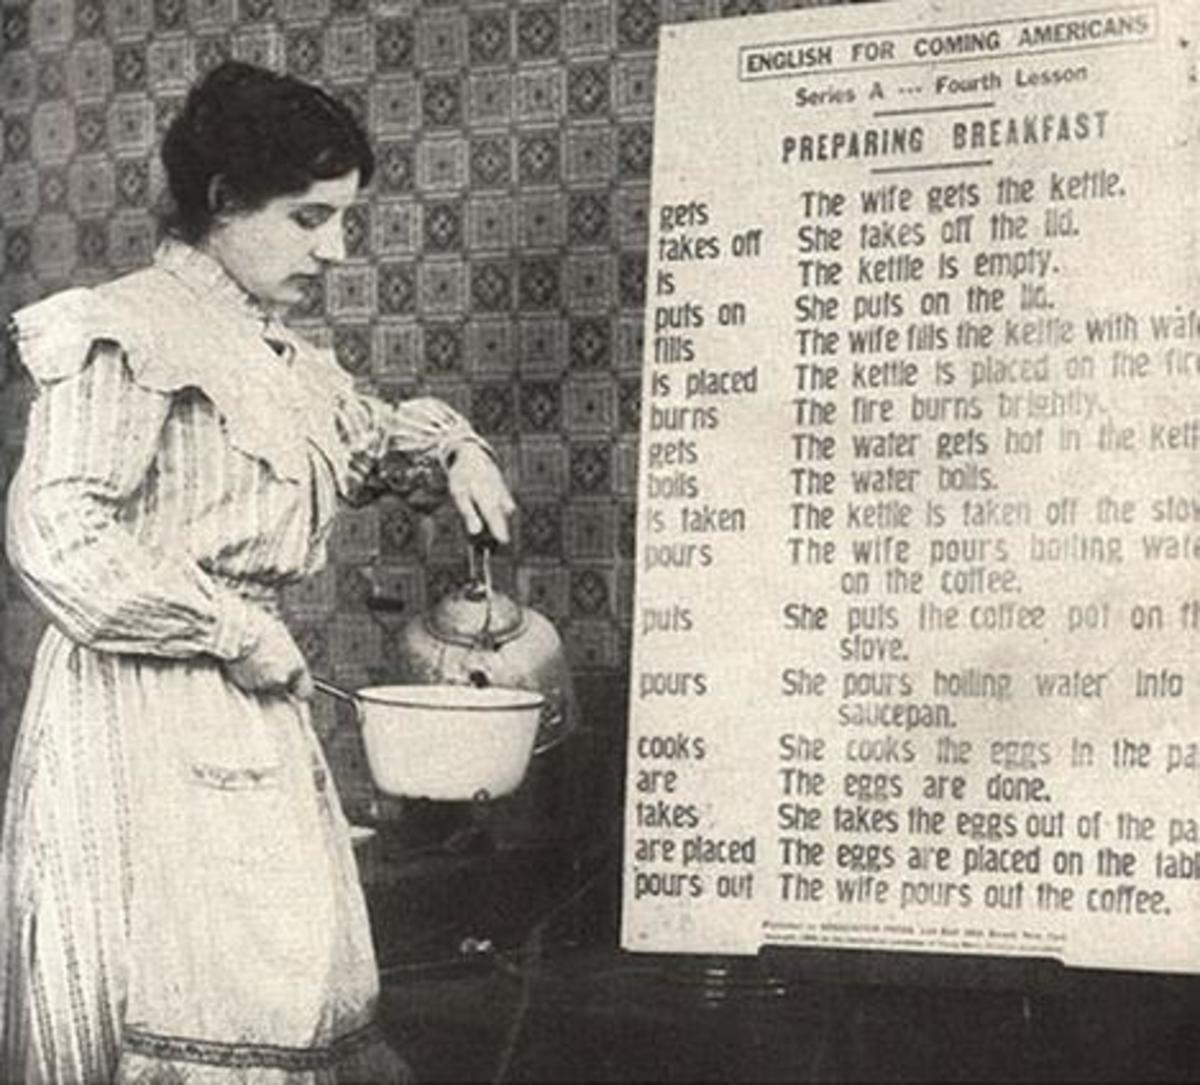 A WWI Era Italian immigrant makes her American breakfast with ESL lessons from the YMCA circa 1918.